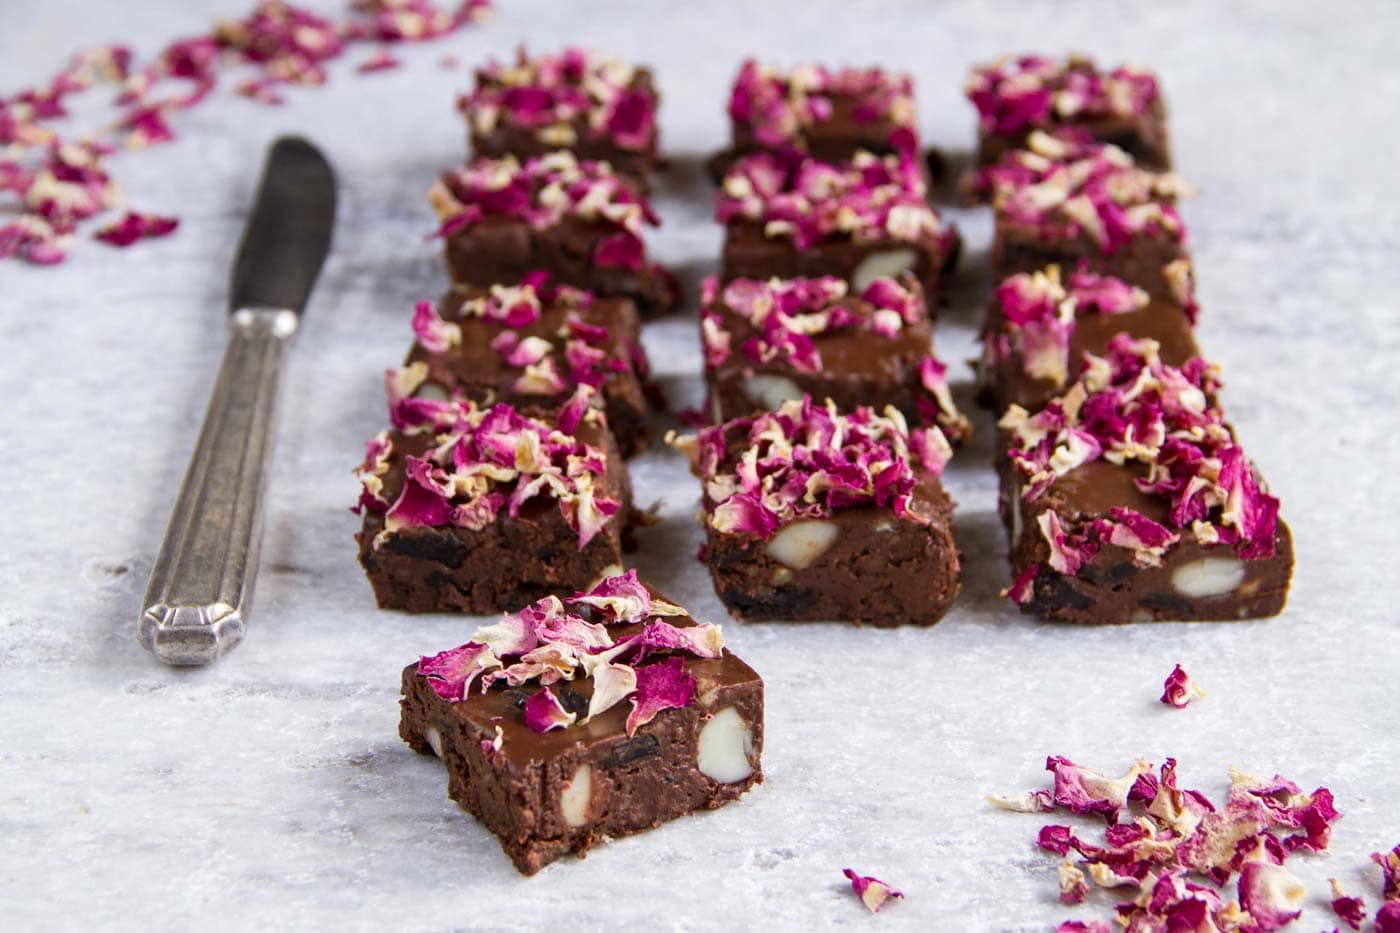 Raw rocky road chocolate candies topped with rose petals on a white surface.